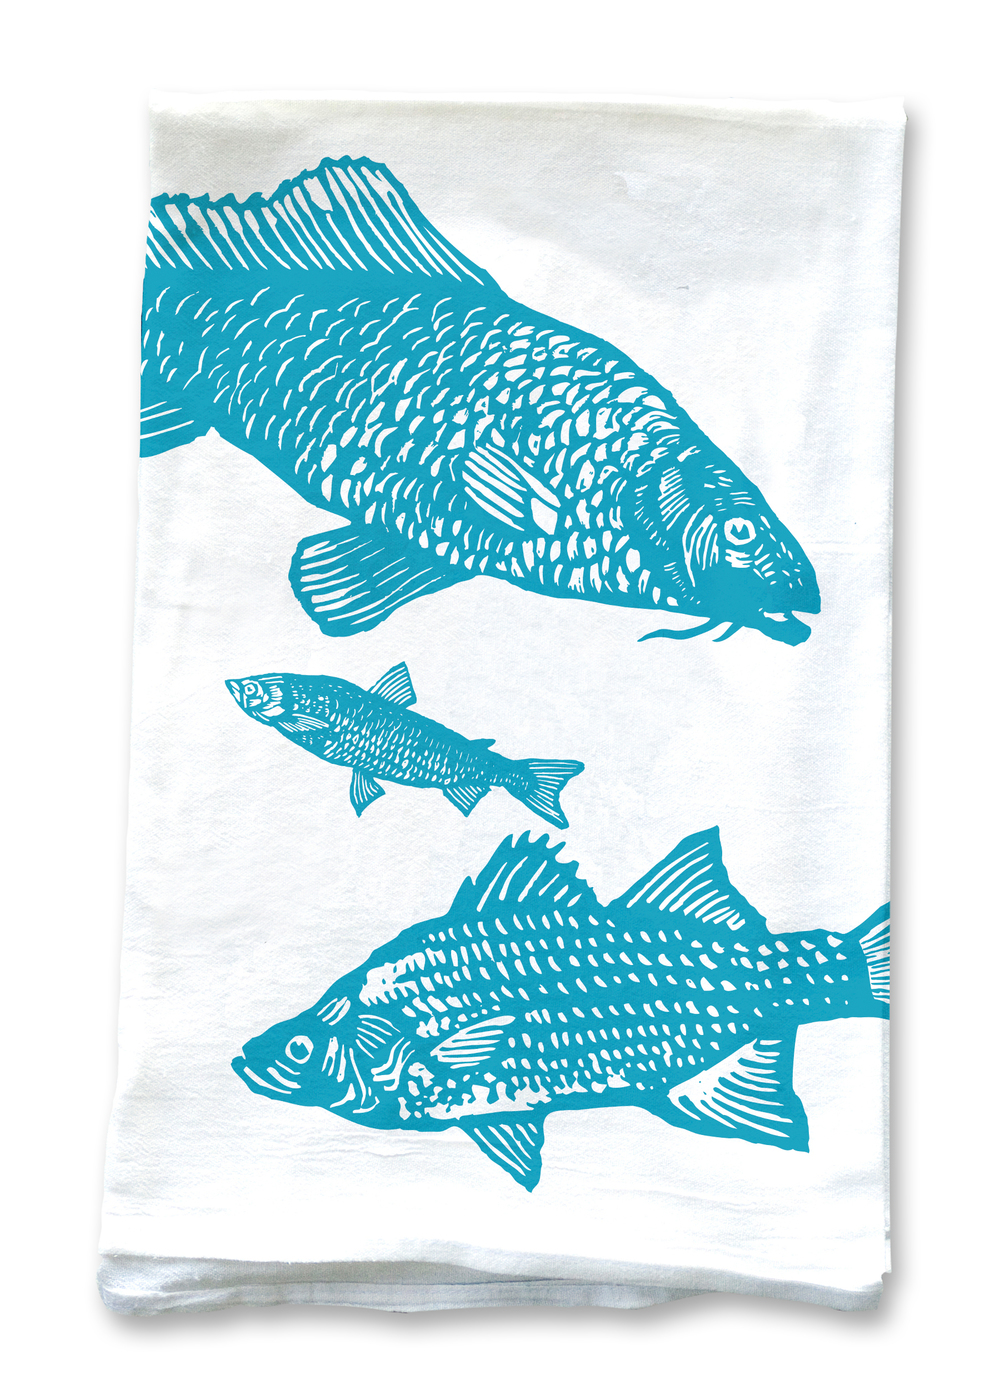 Ocean Theme Kitchen Towels: 4 Pack Assortment